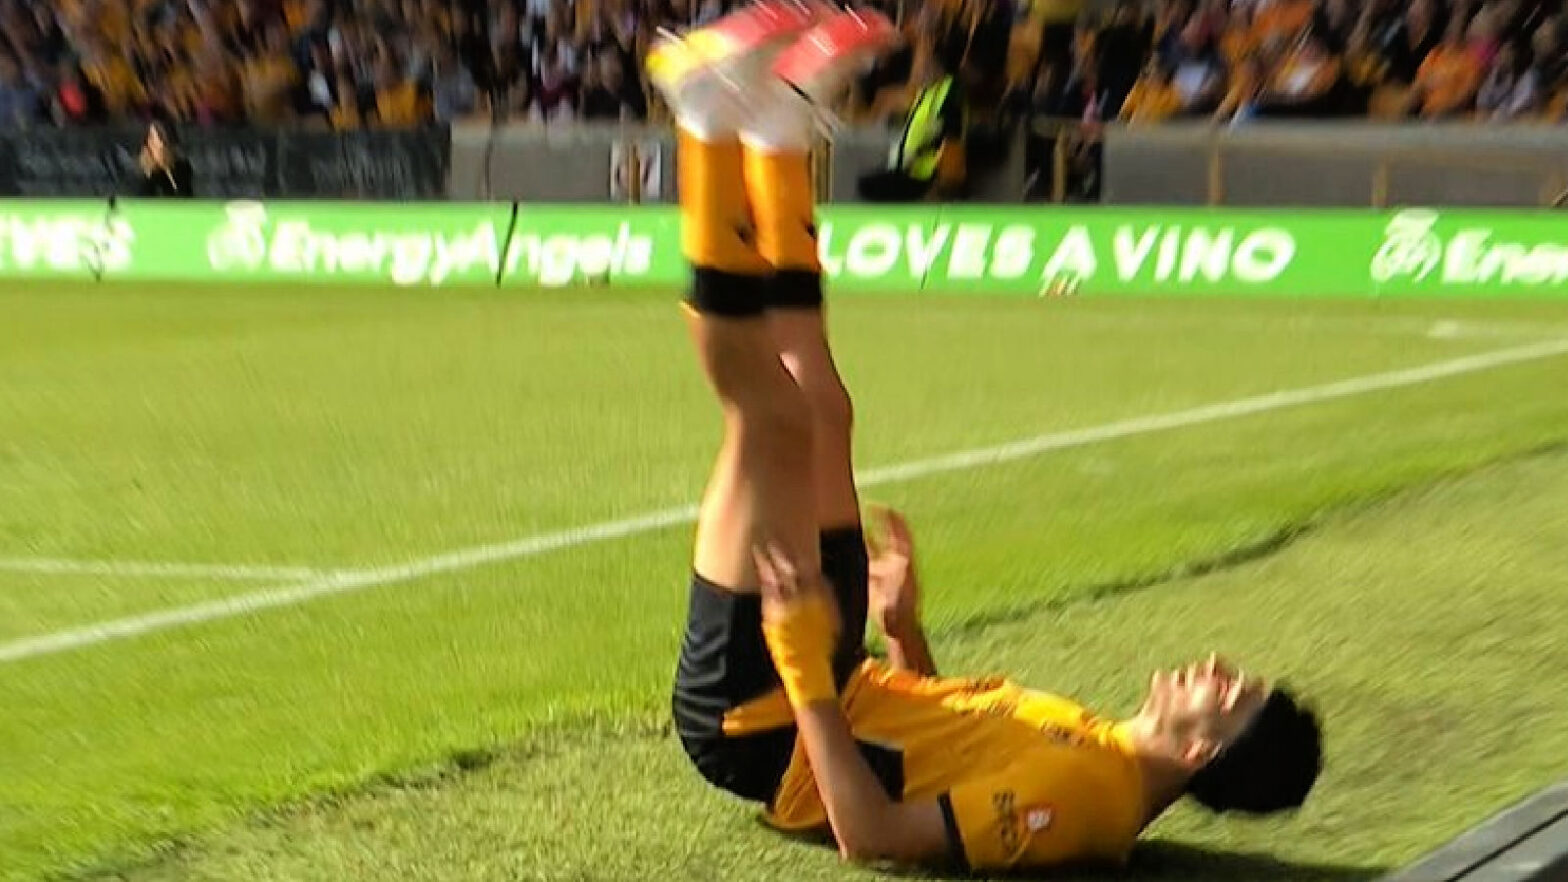 Raul Jimenez on the floor after failing to execute a rabona pass against Brentford